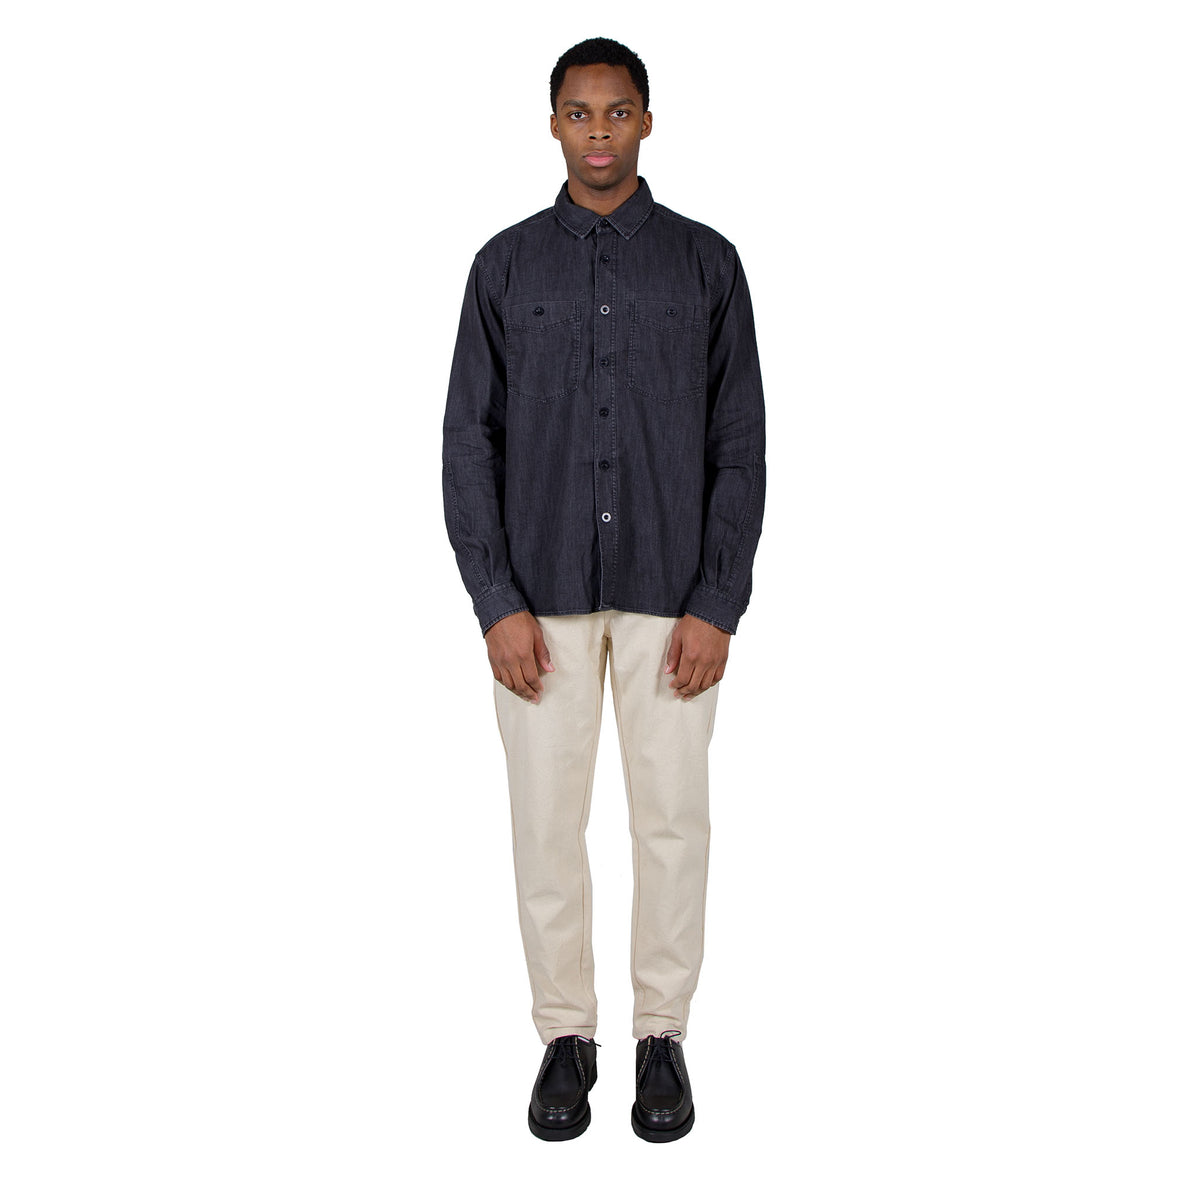 Albam Carpenters Work Shirt in Black